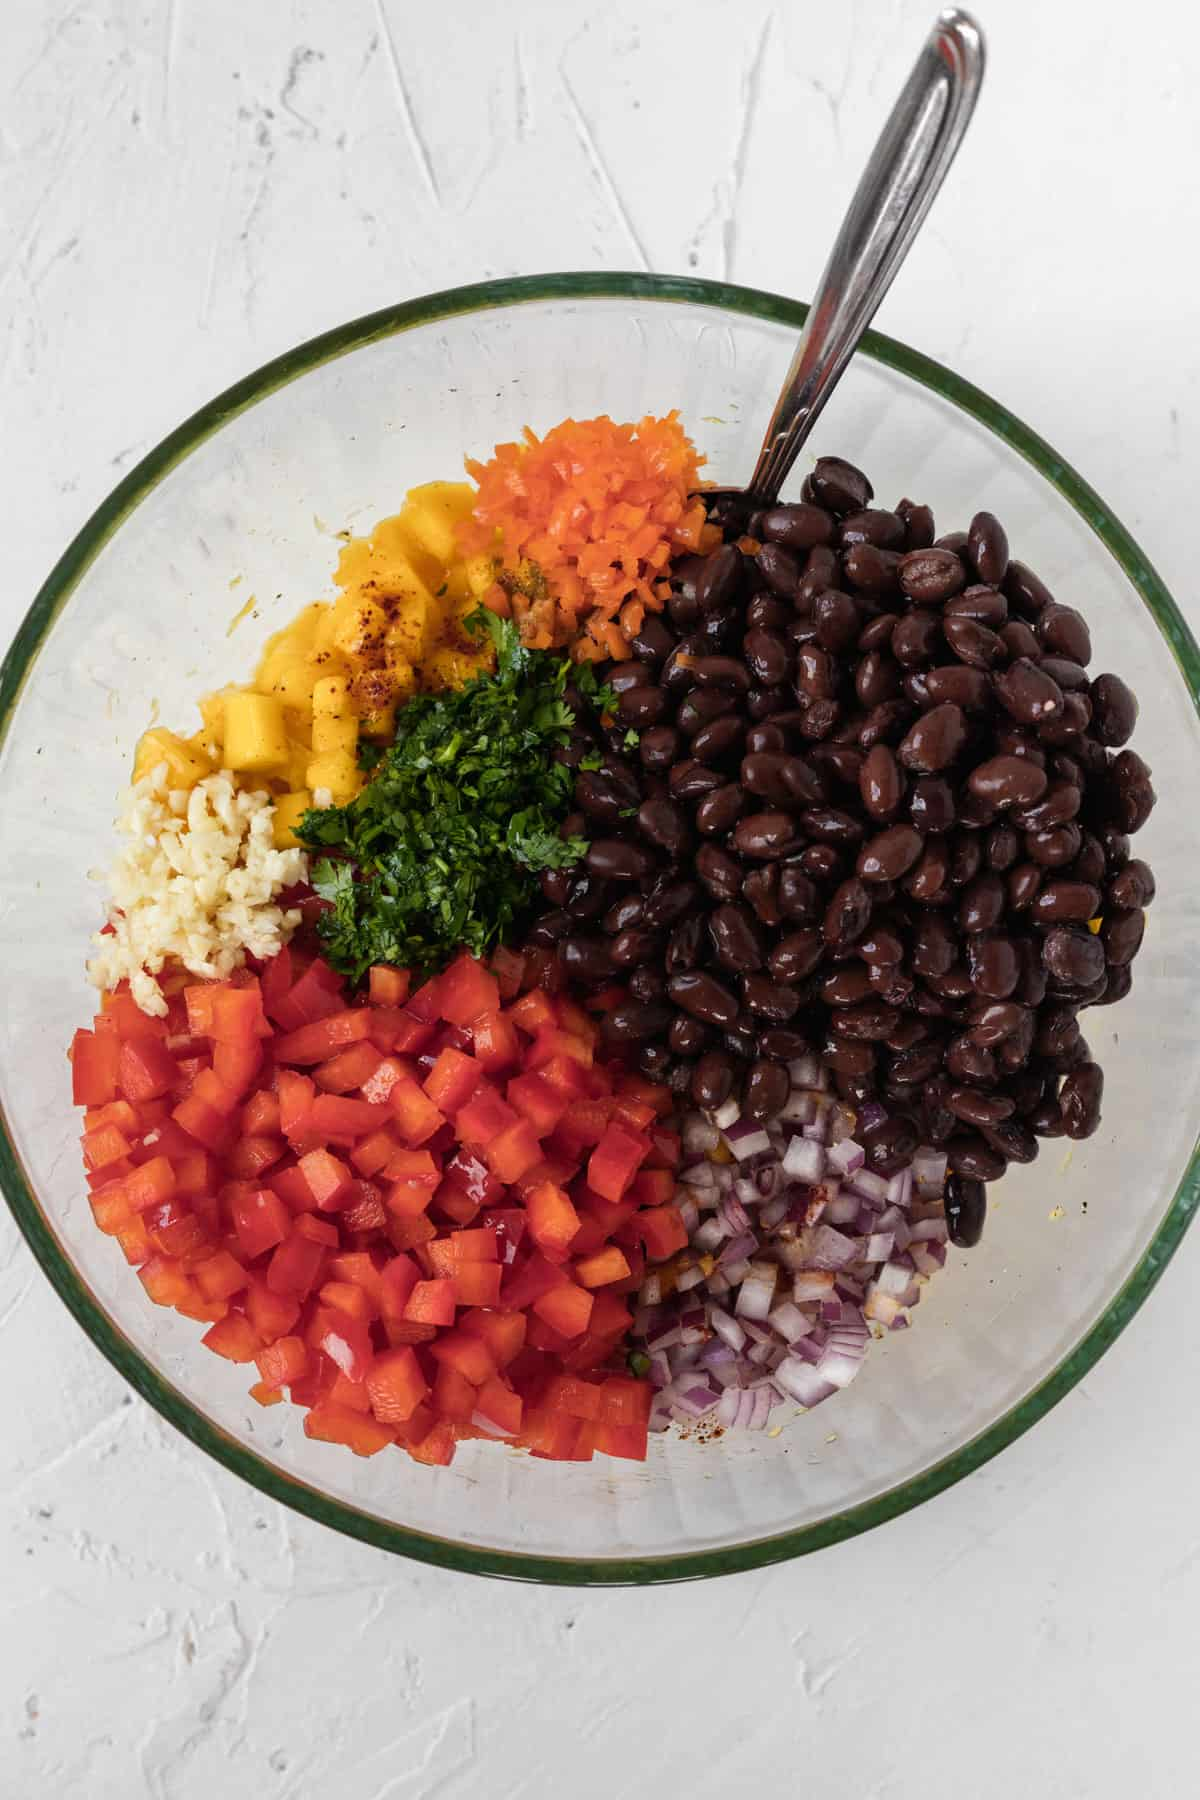 All the ingredients for spicy mango salsa chopped up and piled in a glass bowl.